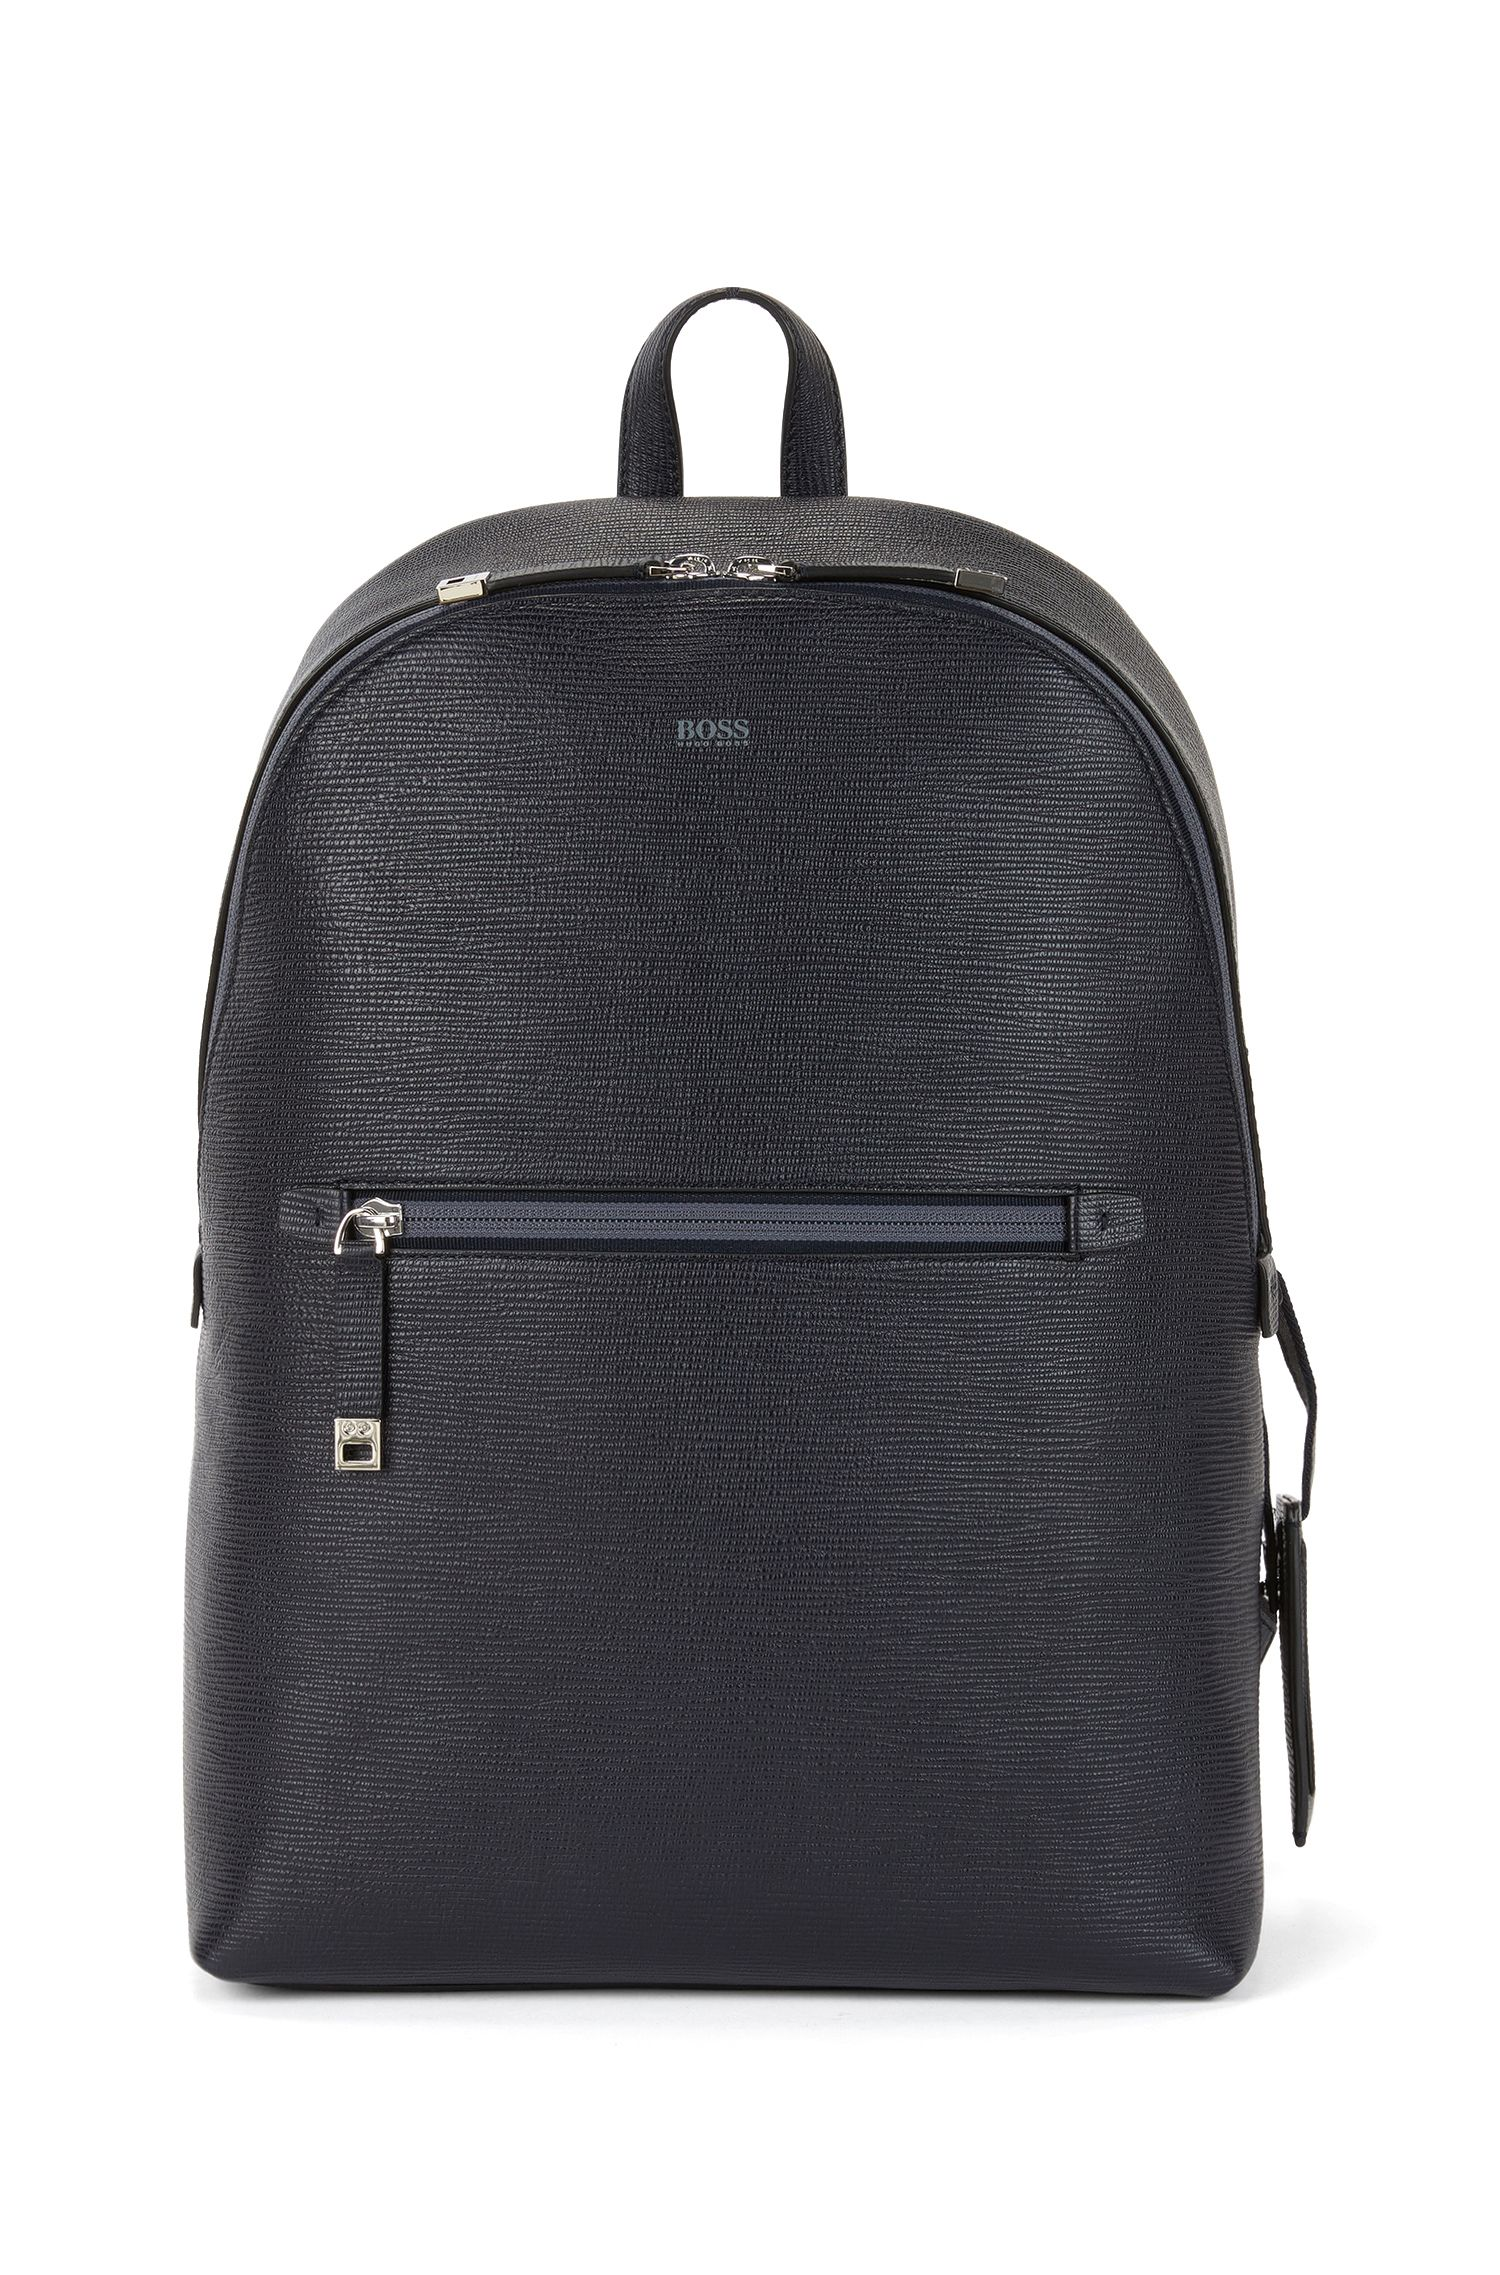 Backpack in printed Italian leather